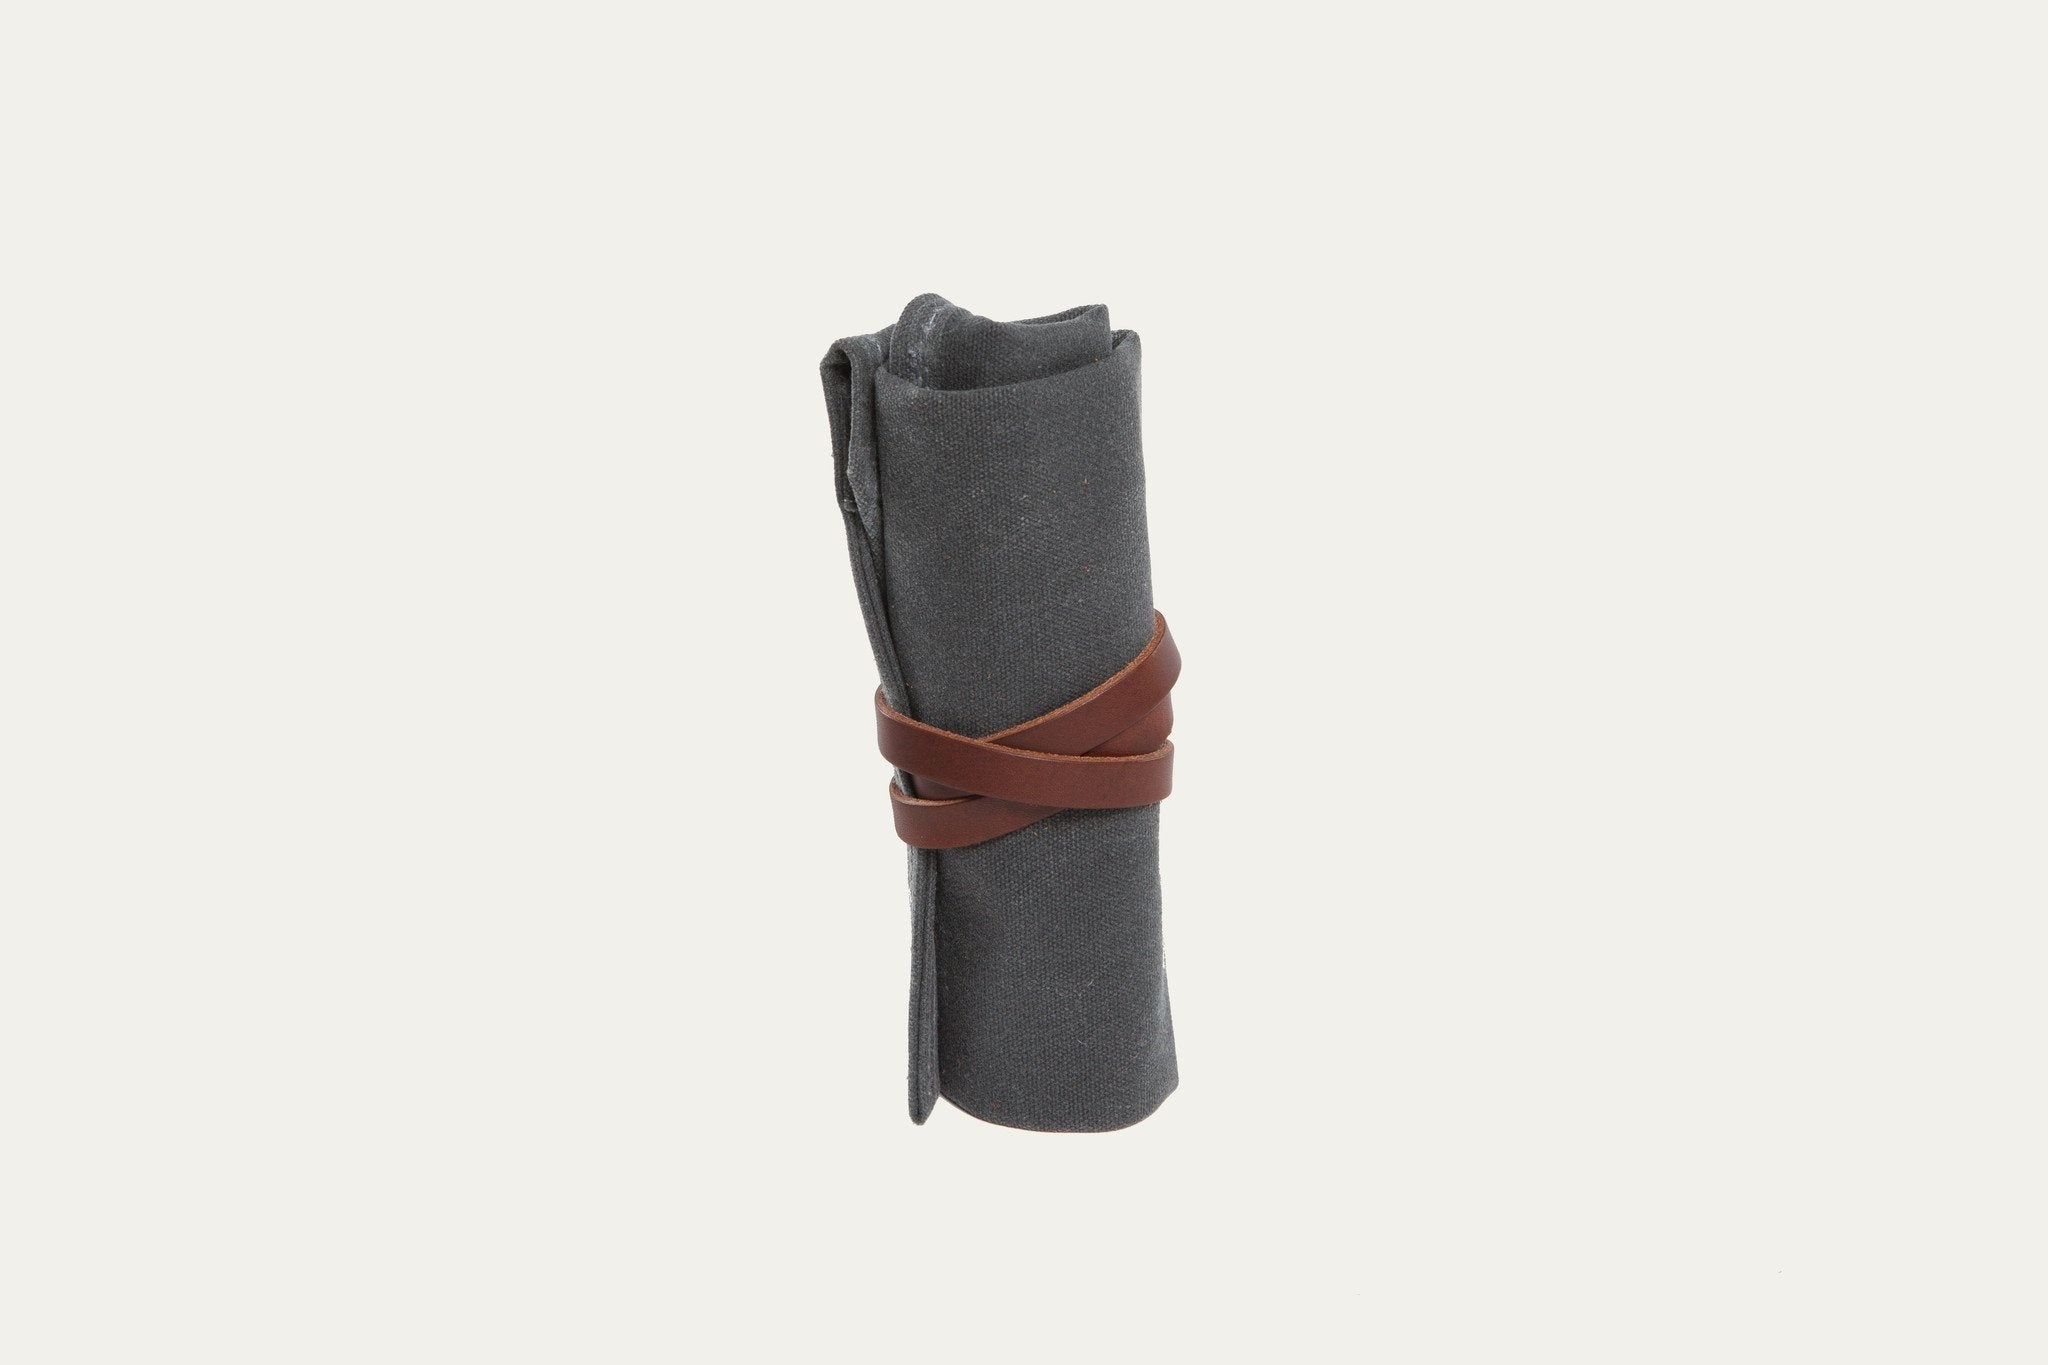 Utility Roll - Charcoal